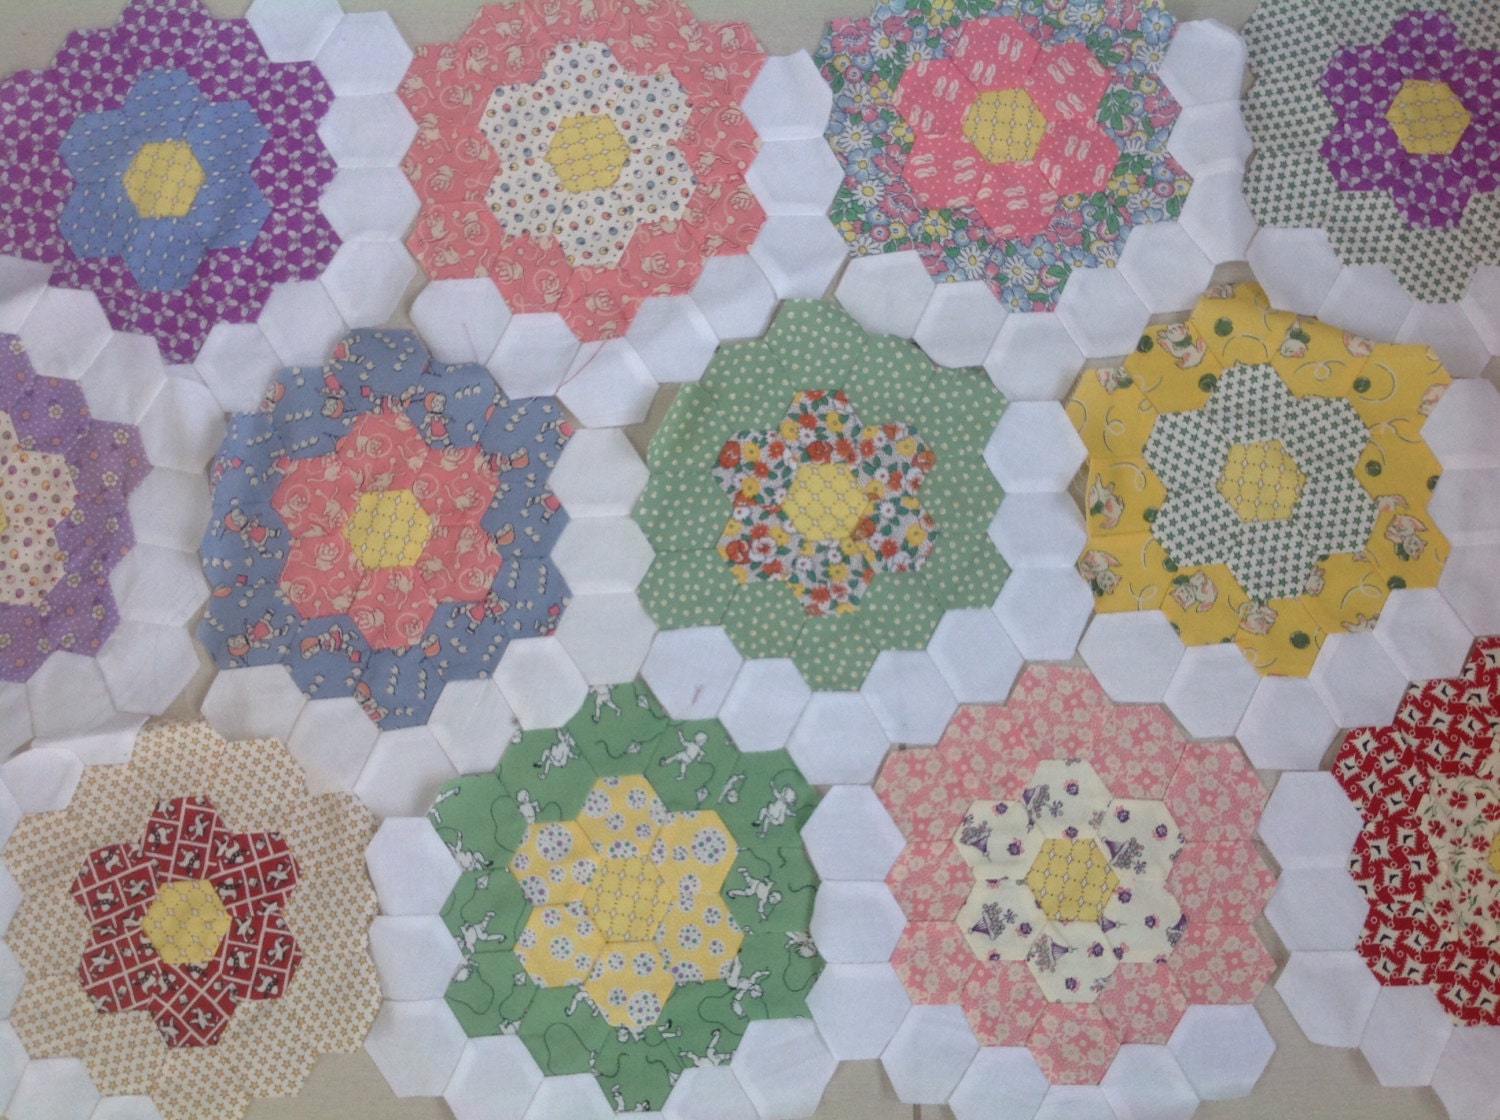 Vintage Calico Print Fabric Quilt Pieces Sewing Crafting